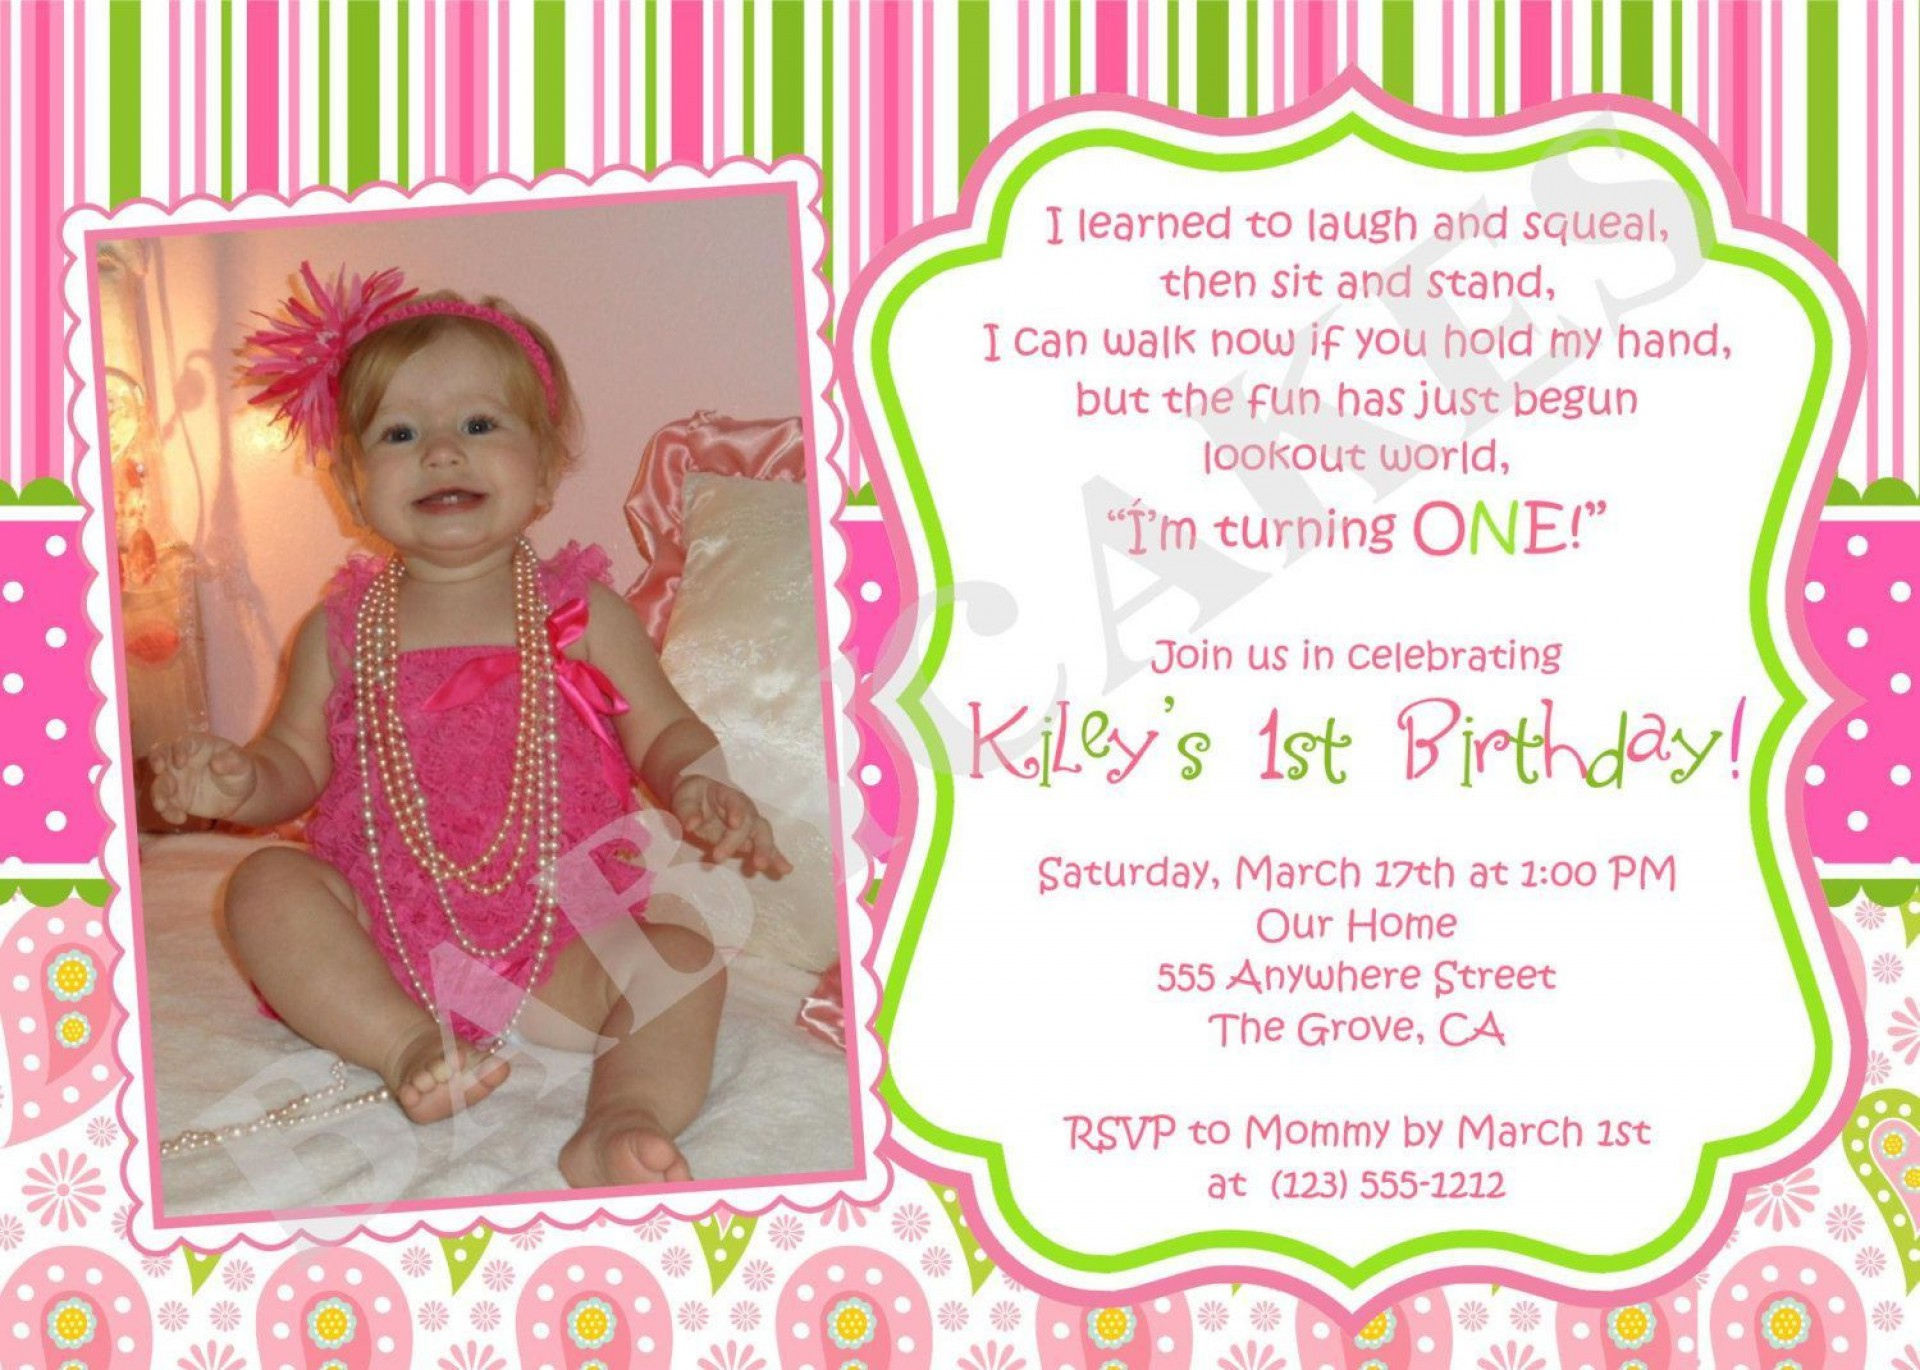 000 Fantastic 1st Birthday Invitation Template High Resolution  Background Design Blank For Girl First Baby Boy Free Download Indian1920